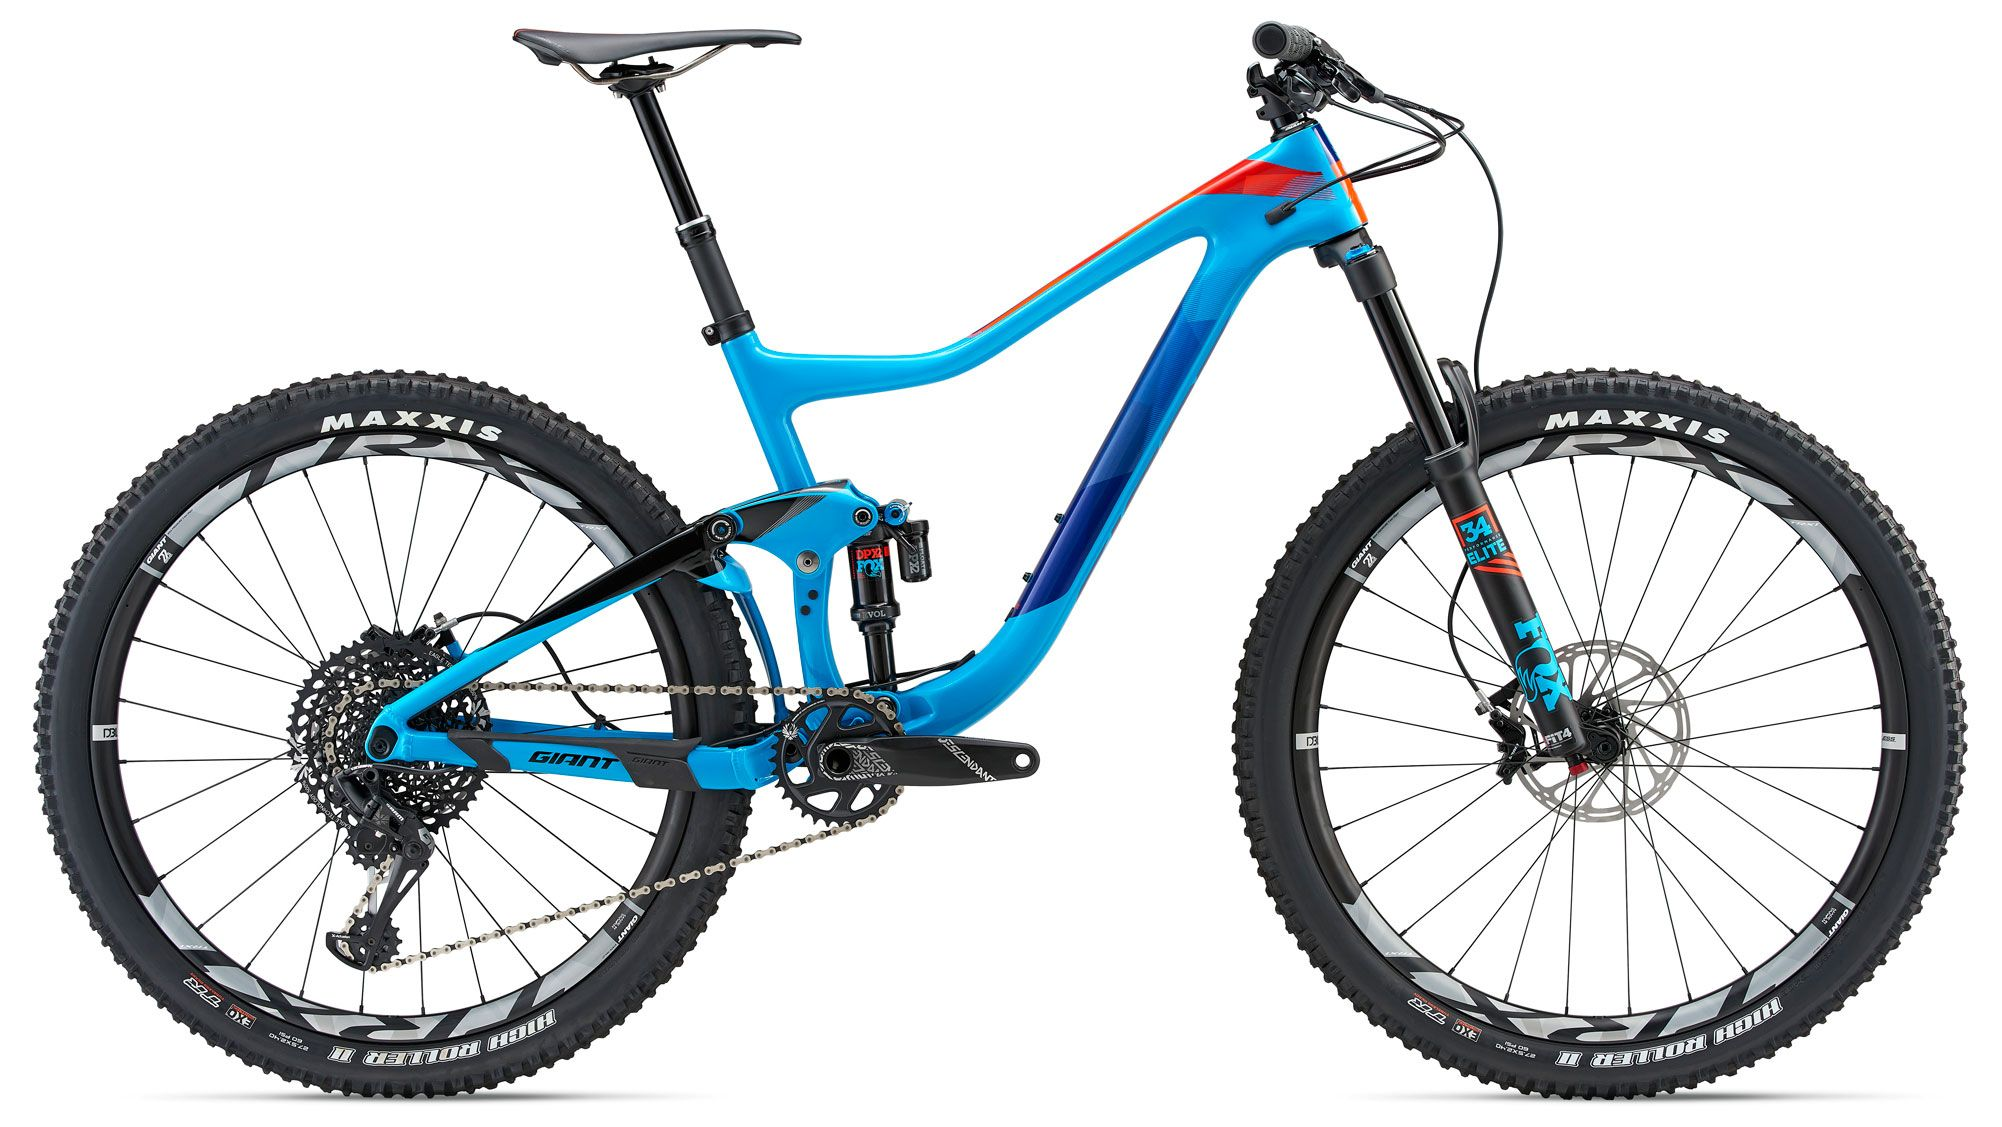 Велосипед Giant Trance Advanced 1 2018 велосипед giant defy advanced pro 0 compact 2015